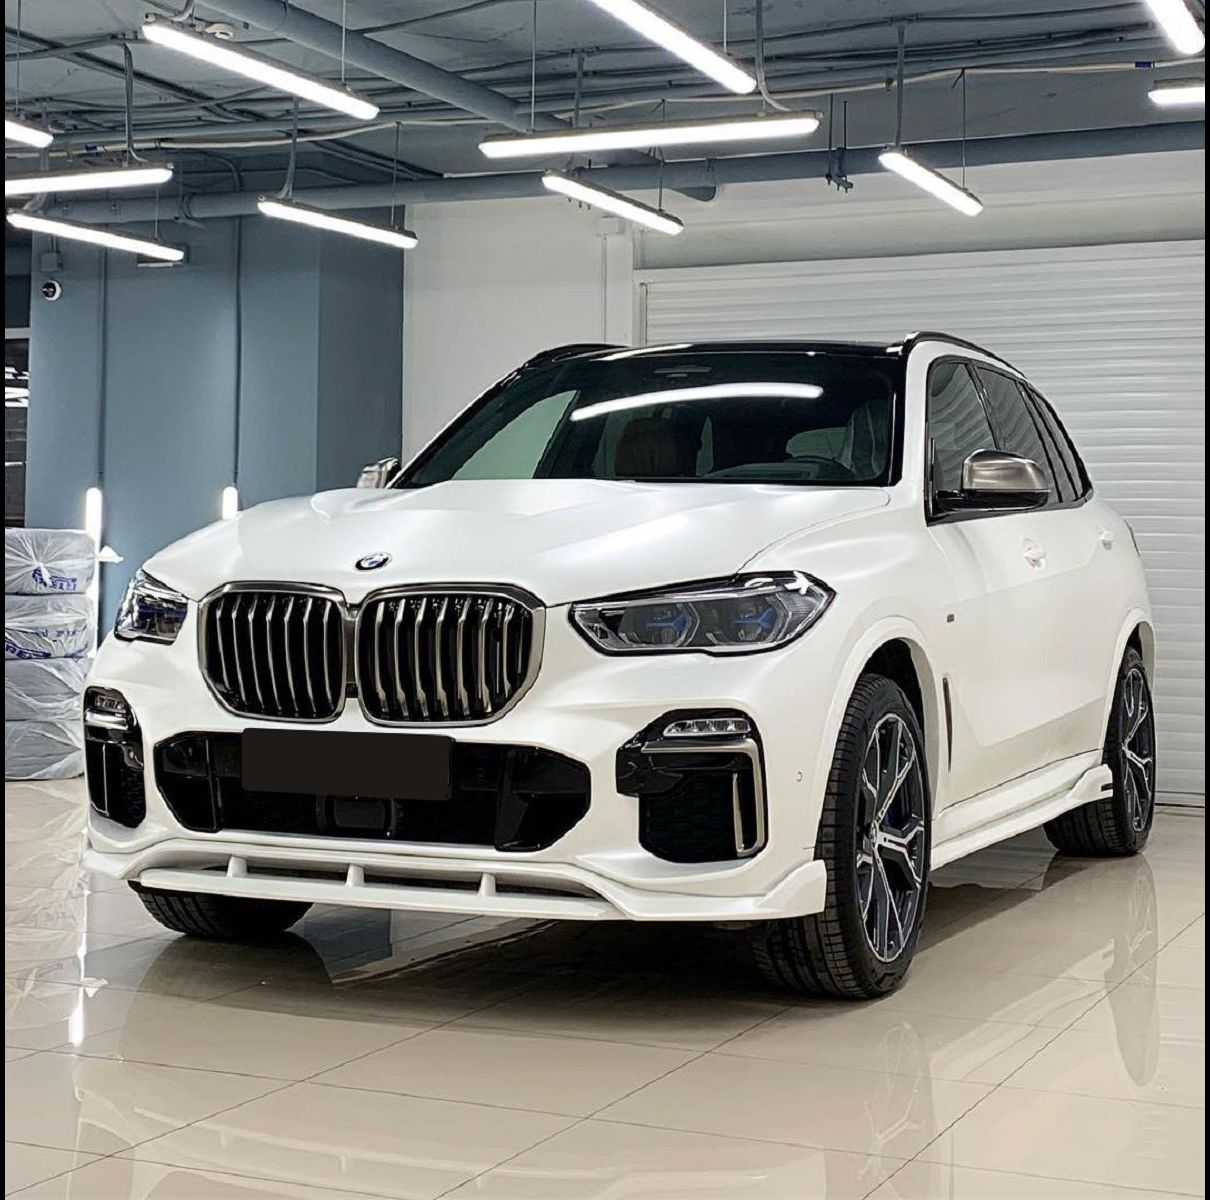 2022 Bmw X5 Towing Capacity 2013 2018 2016 Brake Reviews Lease